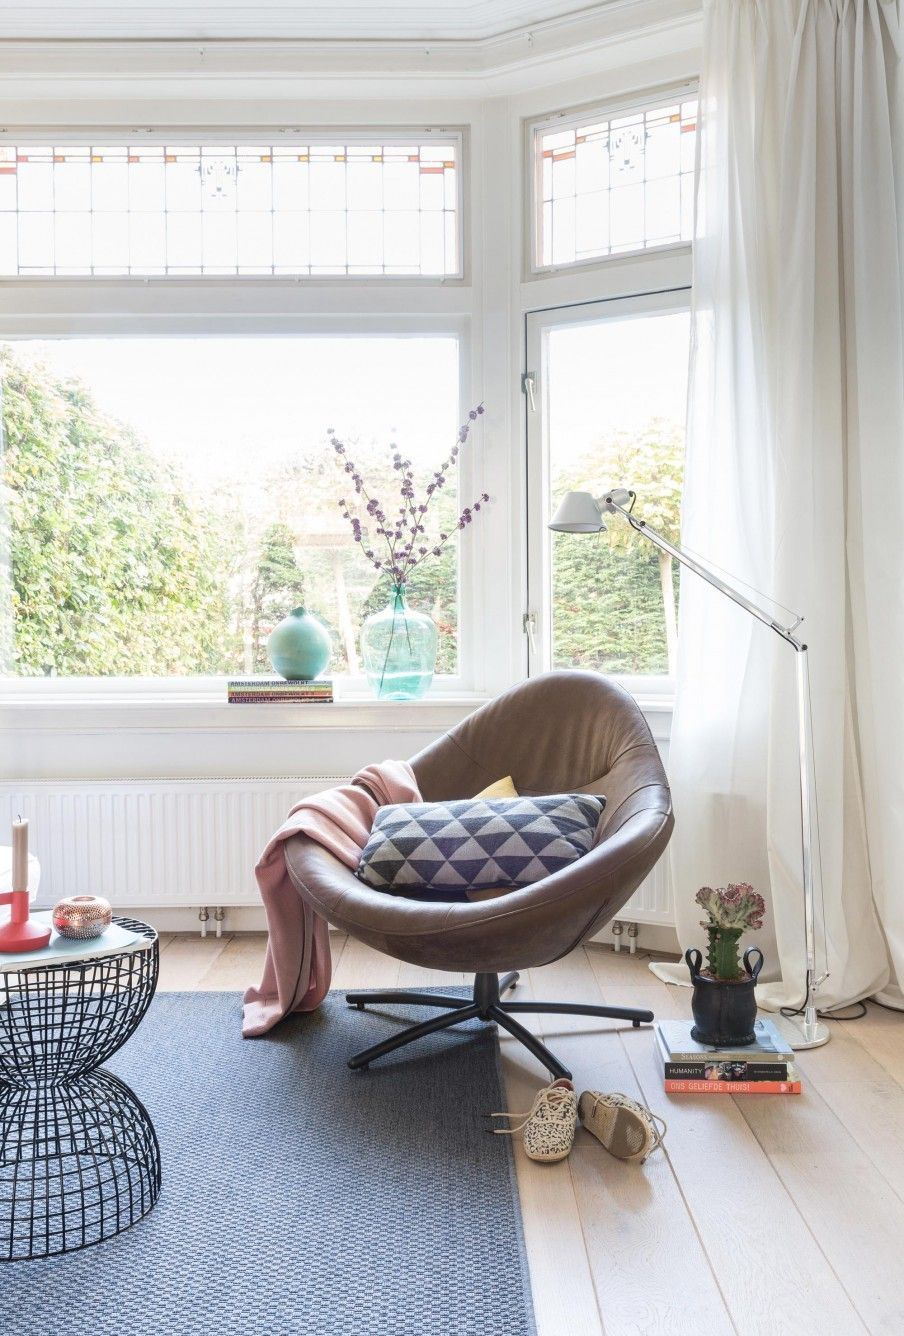 Woonkamer inspiratie | Leather armchair | Styling Sabine Burkunk | Photography Hans Mossel |  vtwonen May 2015